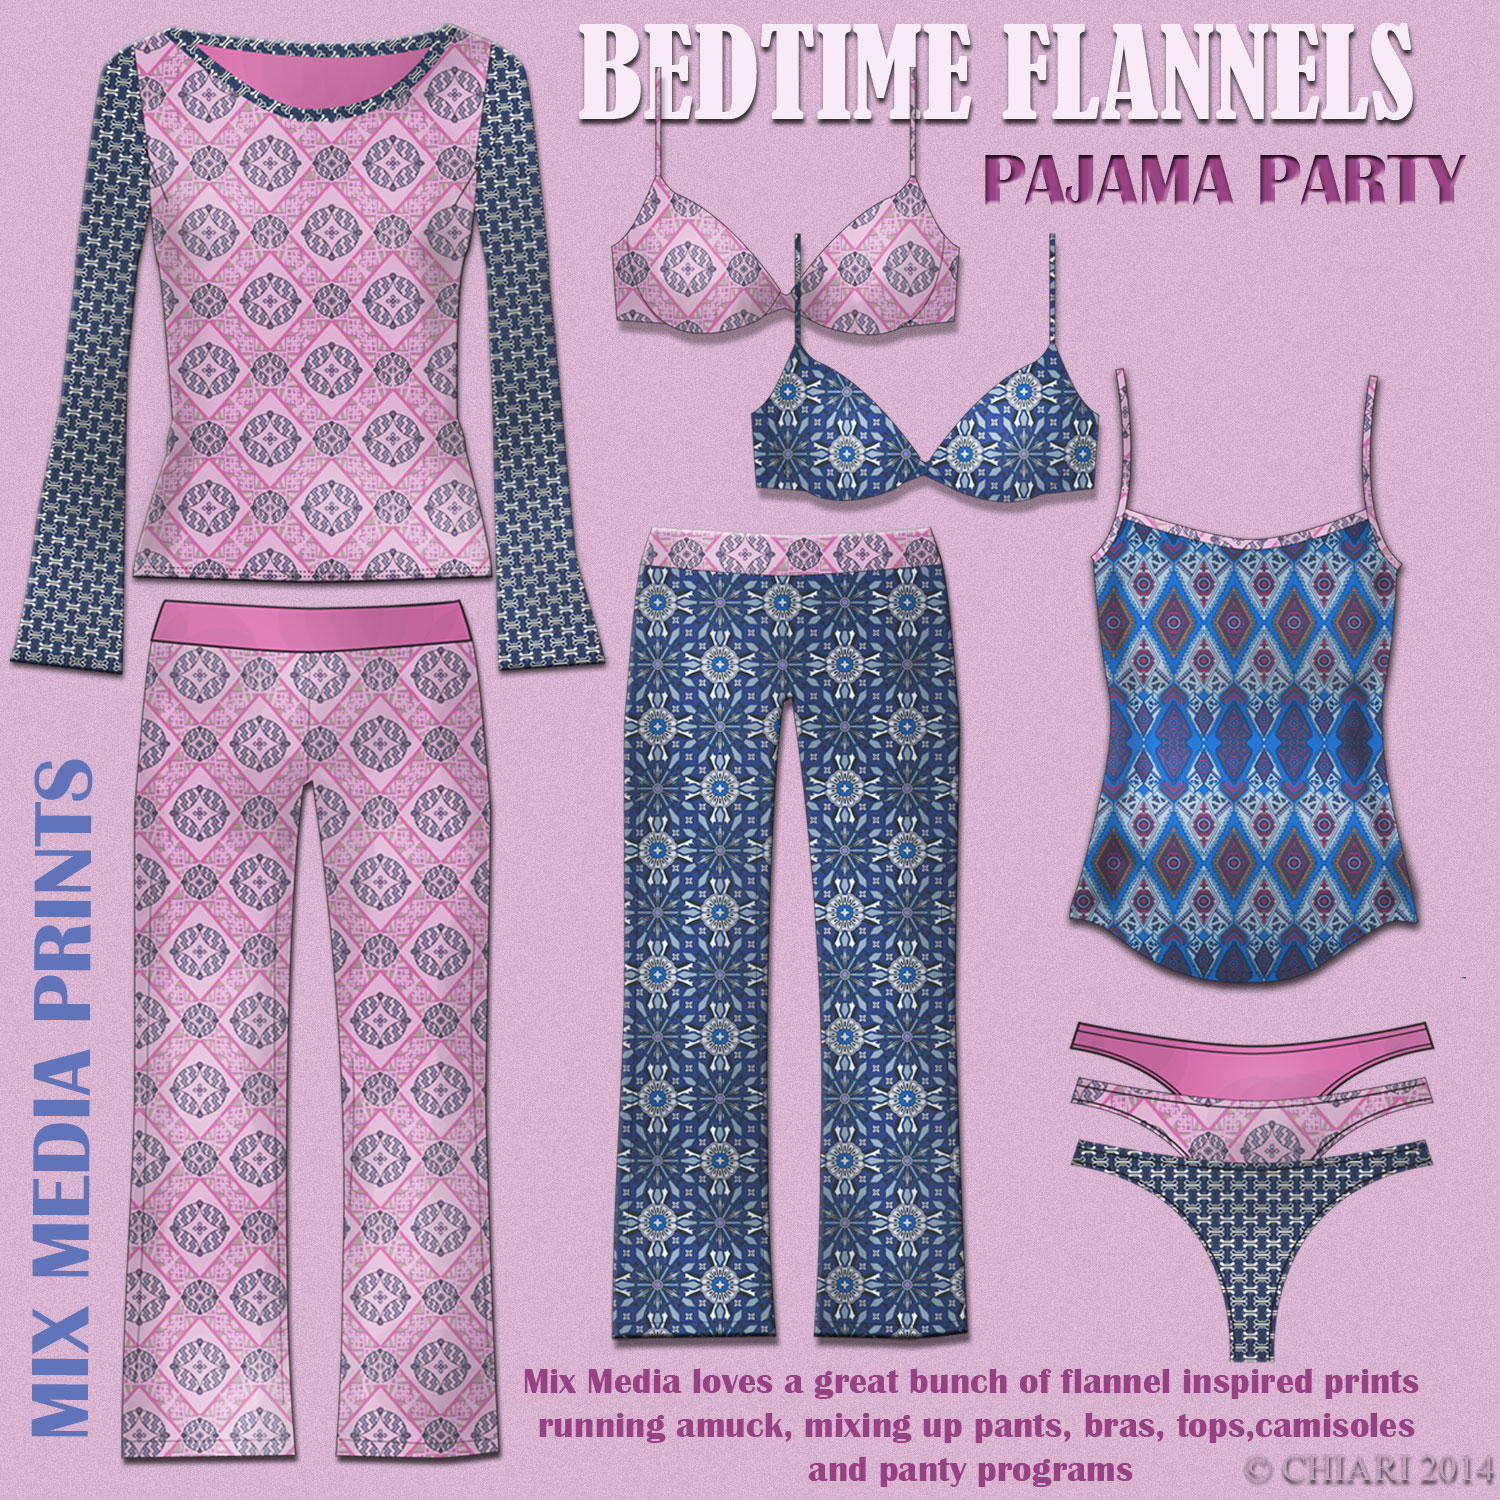 Bedtime Flannels CHIARIstyle 14